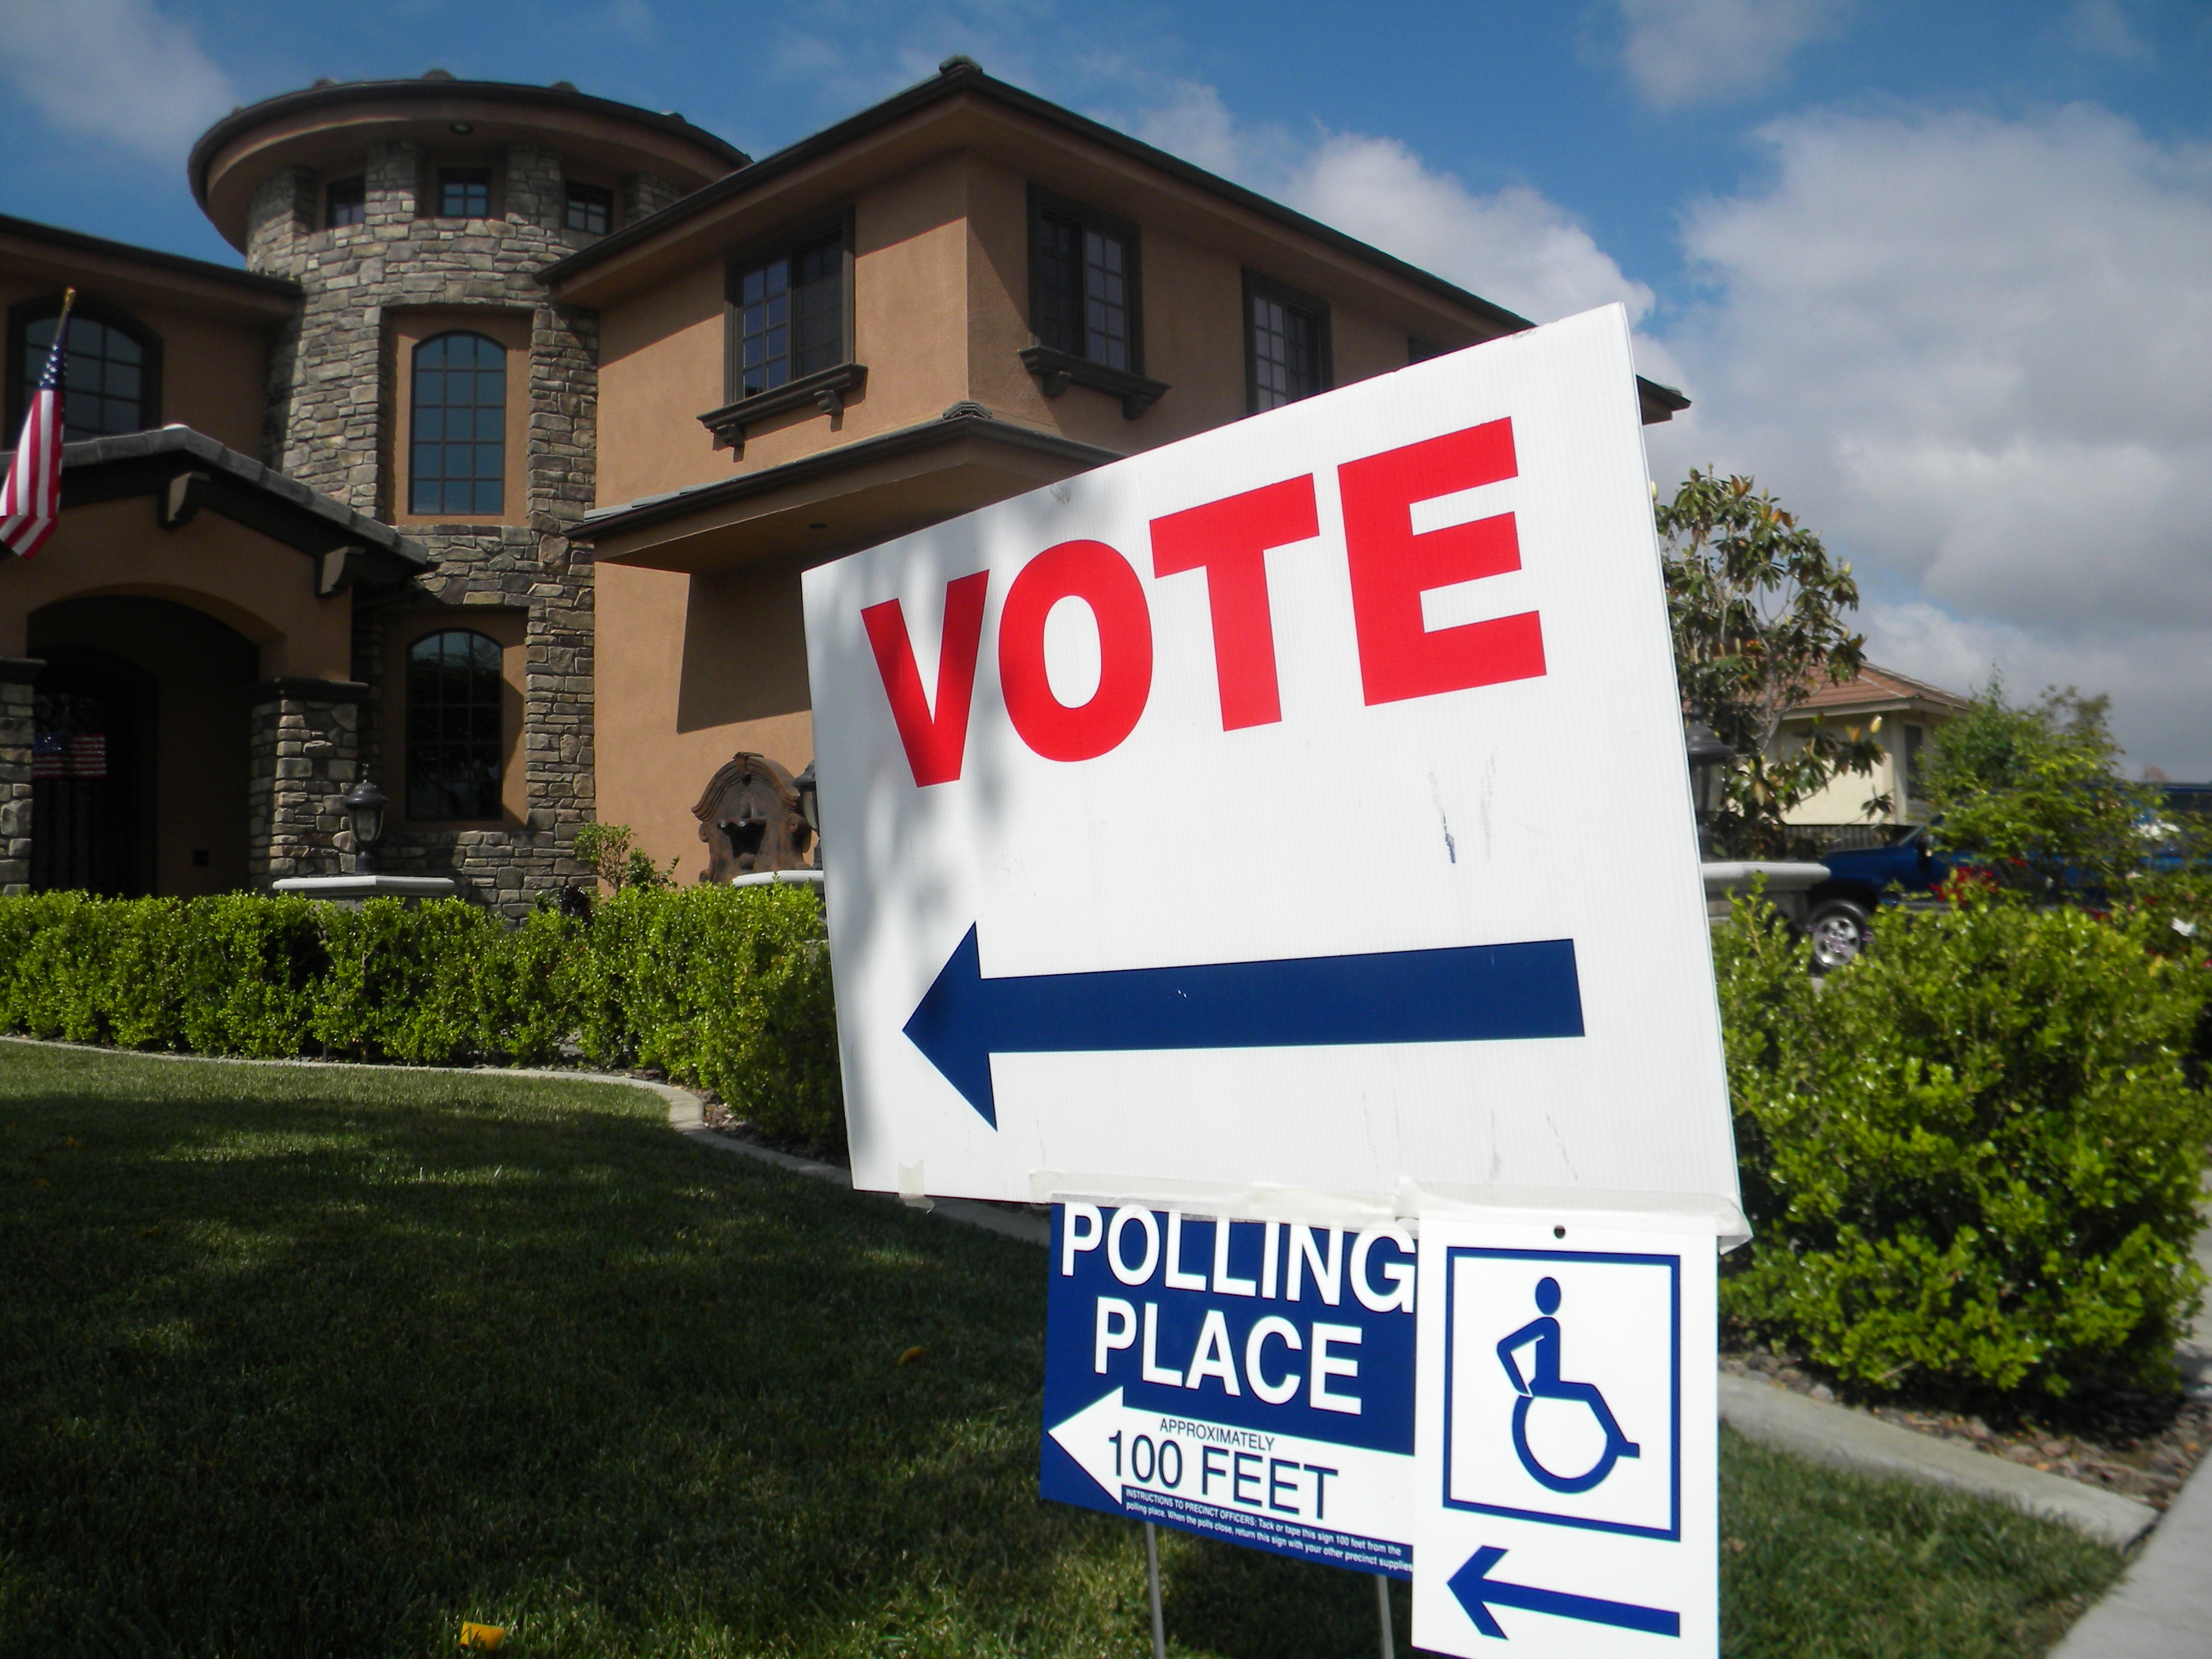 elections 2006 in california essay Environmental voting in canada: evidence from the 2006 canadian federal election mike painter-main mpaintermain@utorontoca abstract one of the most visible changes in post-war public opinion has been the increased.